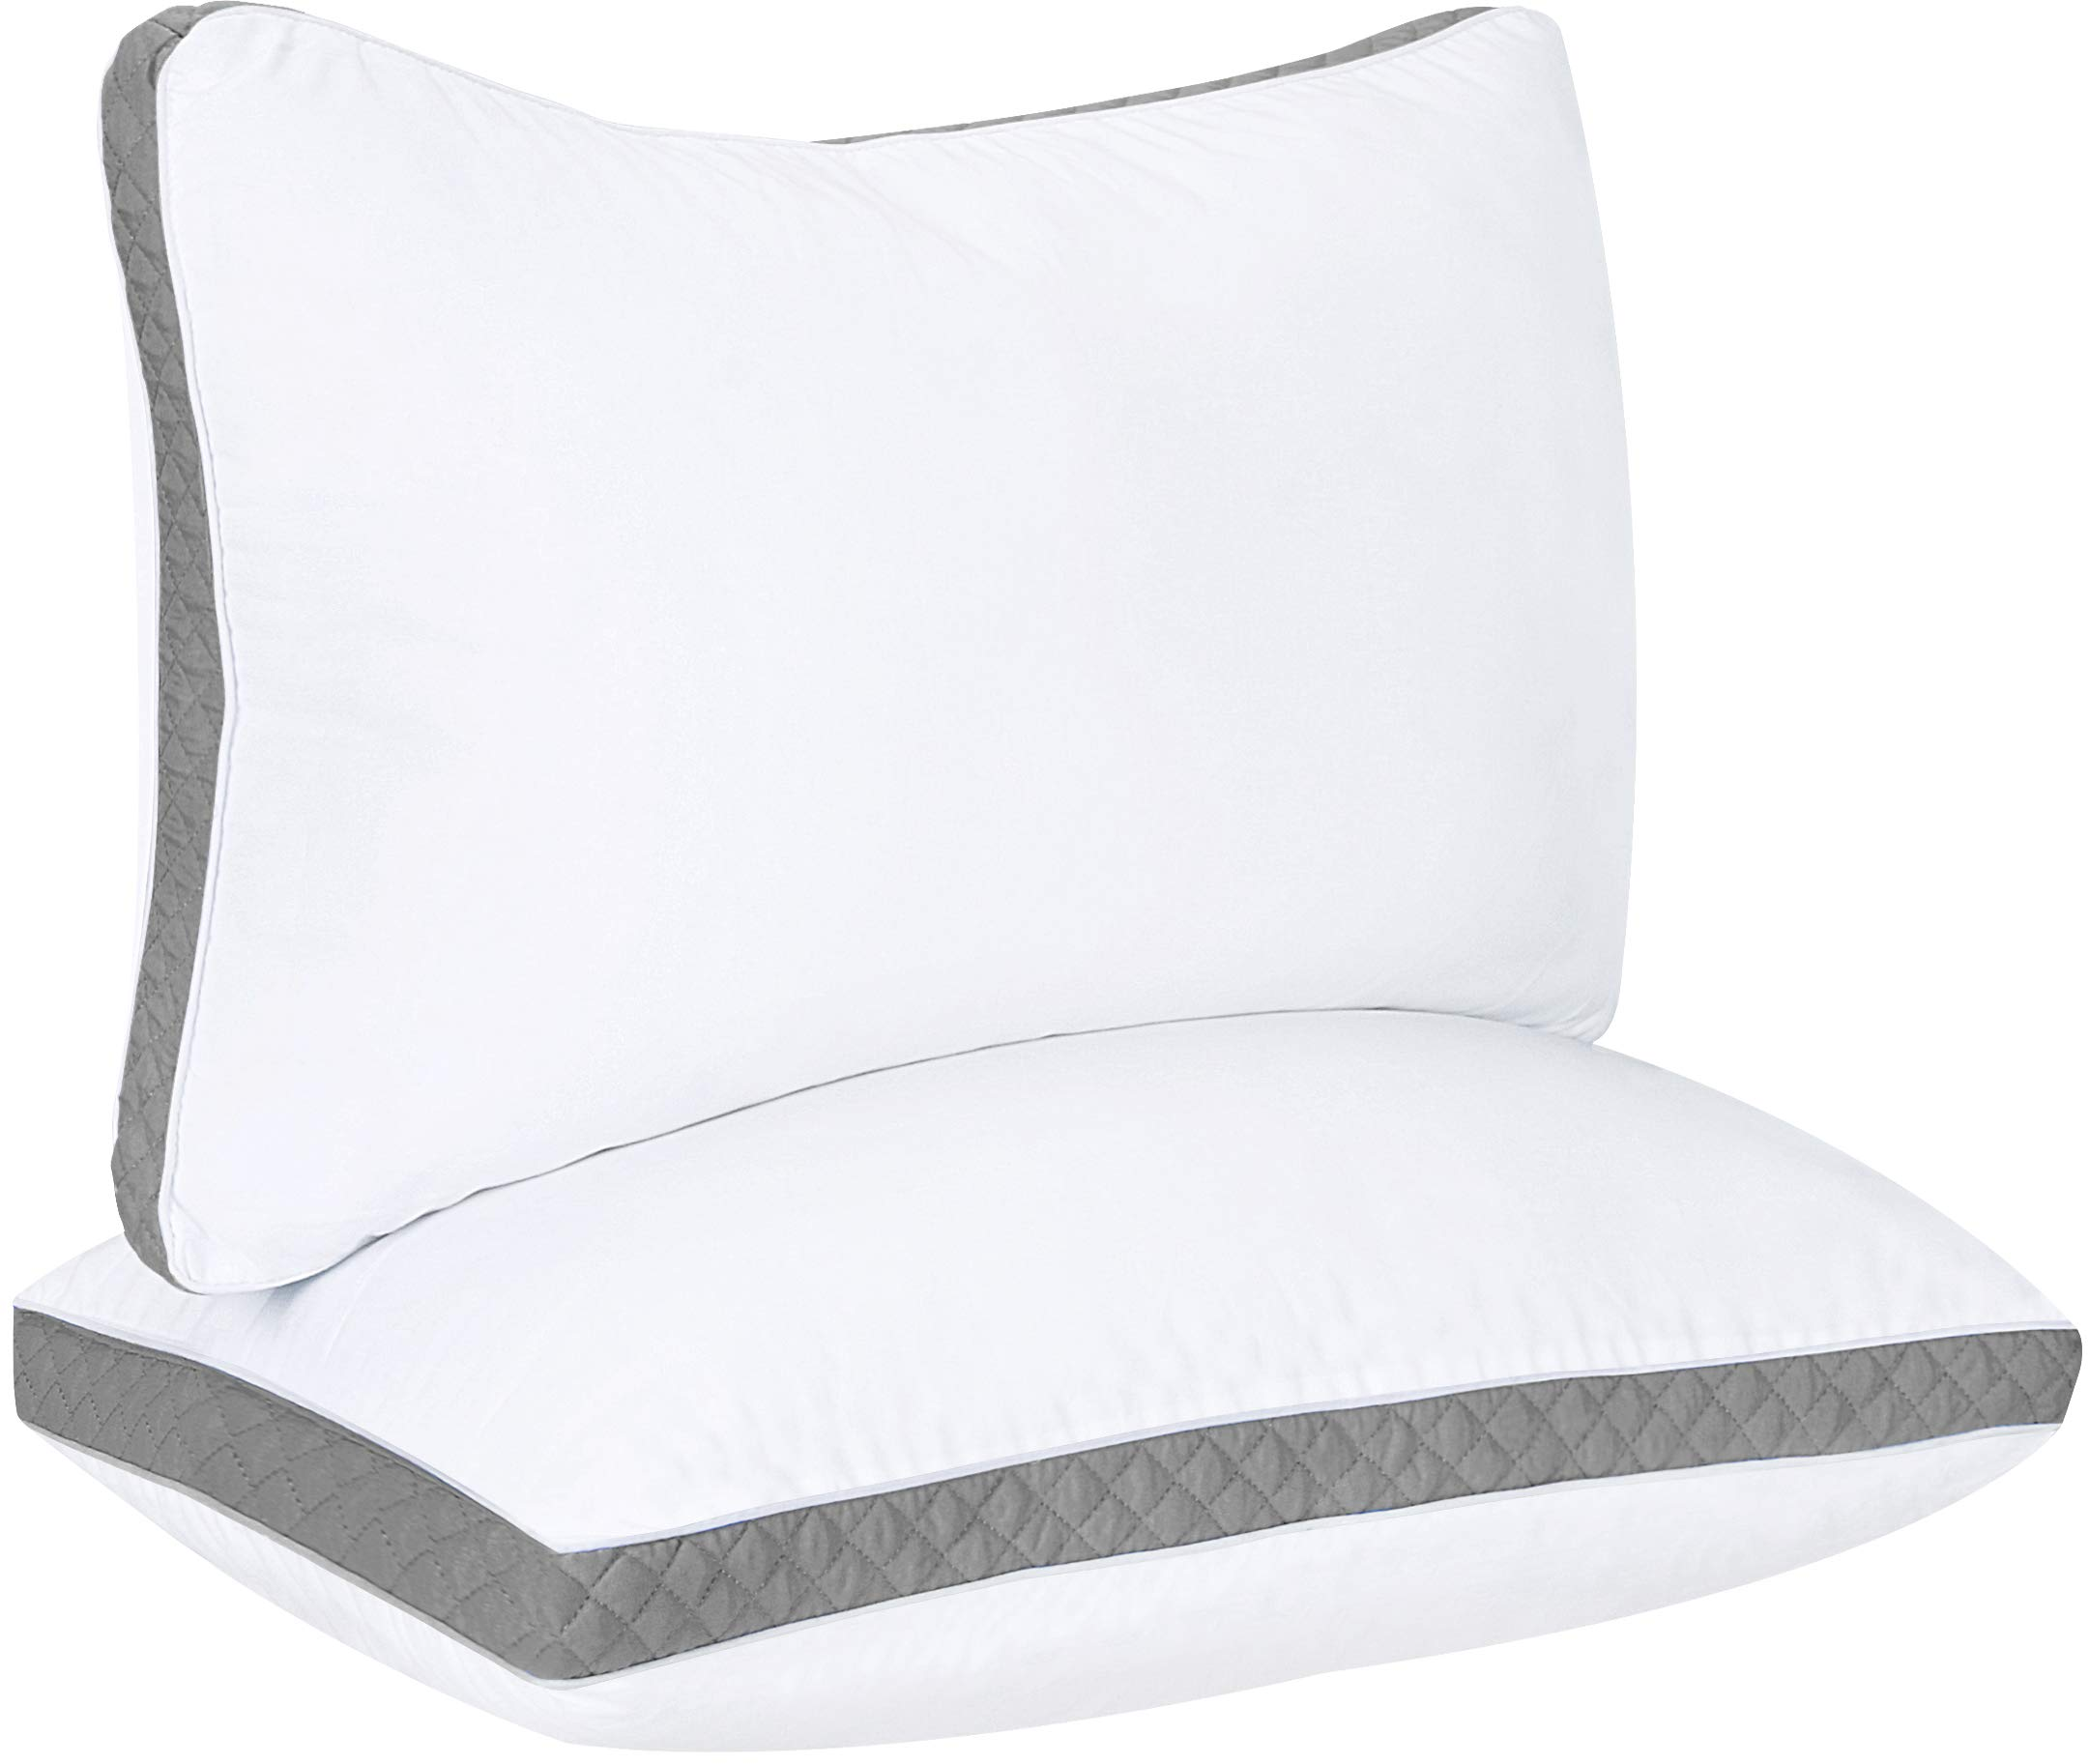 Utopia Bedding Gusseted Quilted Pillow (2-Pack) Premium Quality Bed Pillows - Side Back Sleepers - Grey Gusset - Queen - 18 x 26 Inches by Utopia Bedding